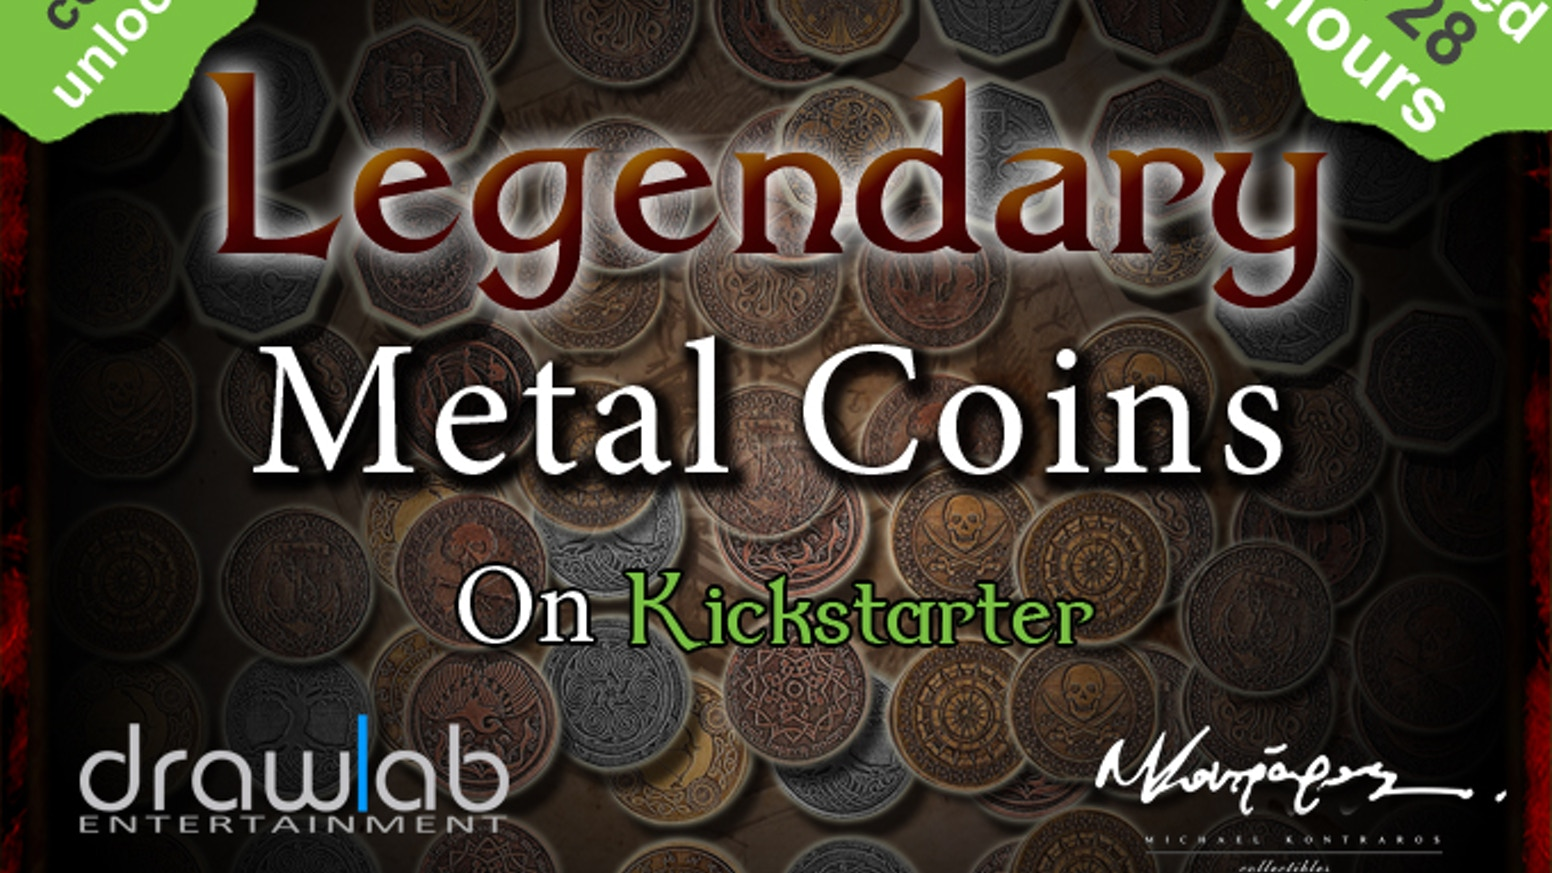 Fantastic metal coins that will help your games shine and enrich your gaming experience. Free shipping worldwide!